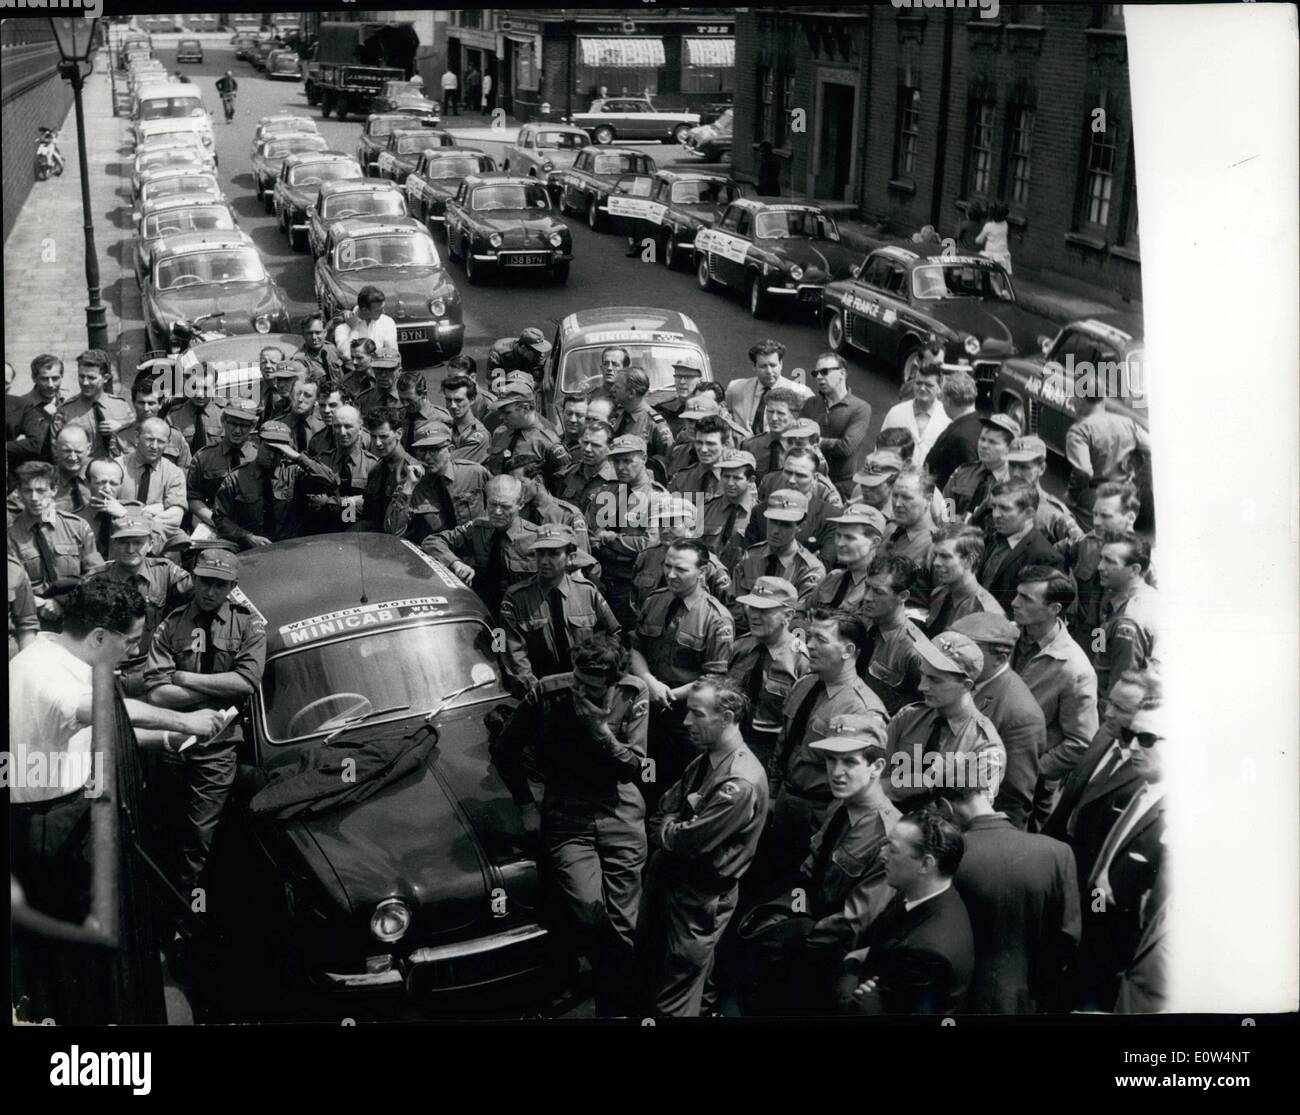 Jun. 06, 1961 - THE ''MINICAB versus TAXICAB'' - BATTLE STARTS TODAY. The battle of the fares is expected to start today-when 200 red DAUPHINE Minicabs go into service in London against 9,000 taximen facing the biggest ever threat to their monopoly...The cabs are run by WELBECK MOTORS - with MICHAEL GOTLA as the boss-and backed by millionaire tycoon ISAAC WOLFSON...The Minicabs will not ply for hire-like ordinary cabs-but will be booked and detailed by radio telephone.. - Stock Image